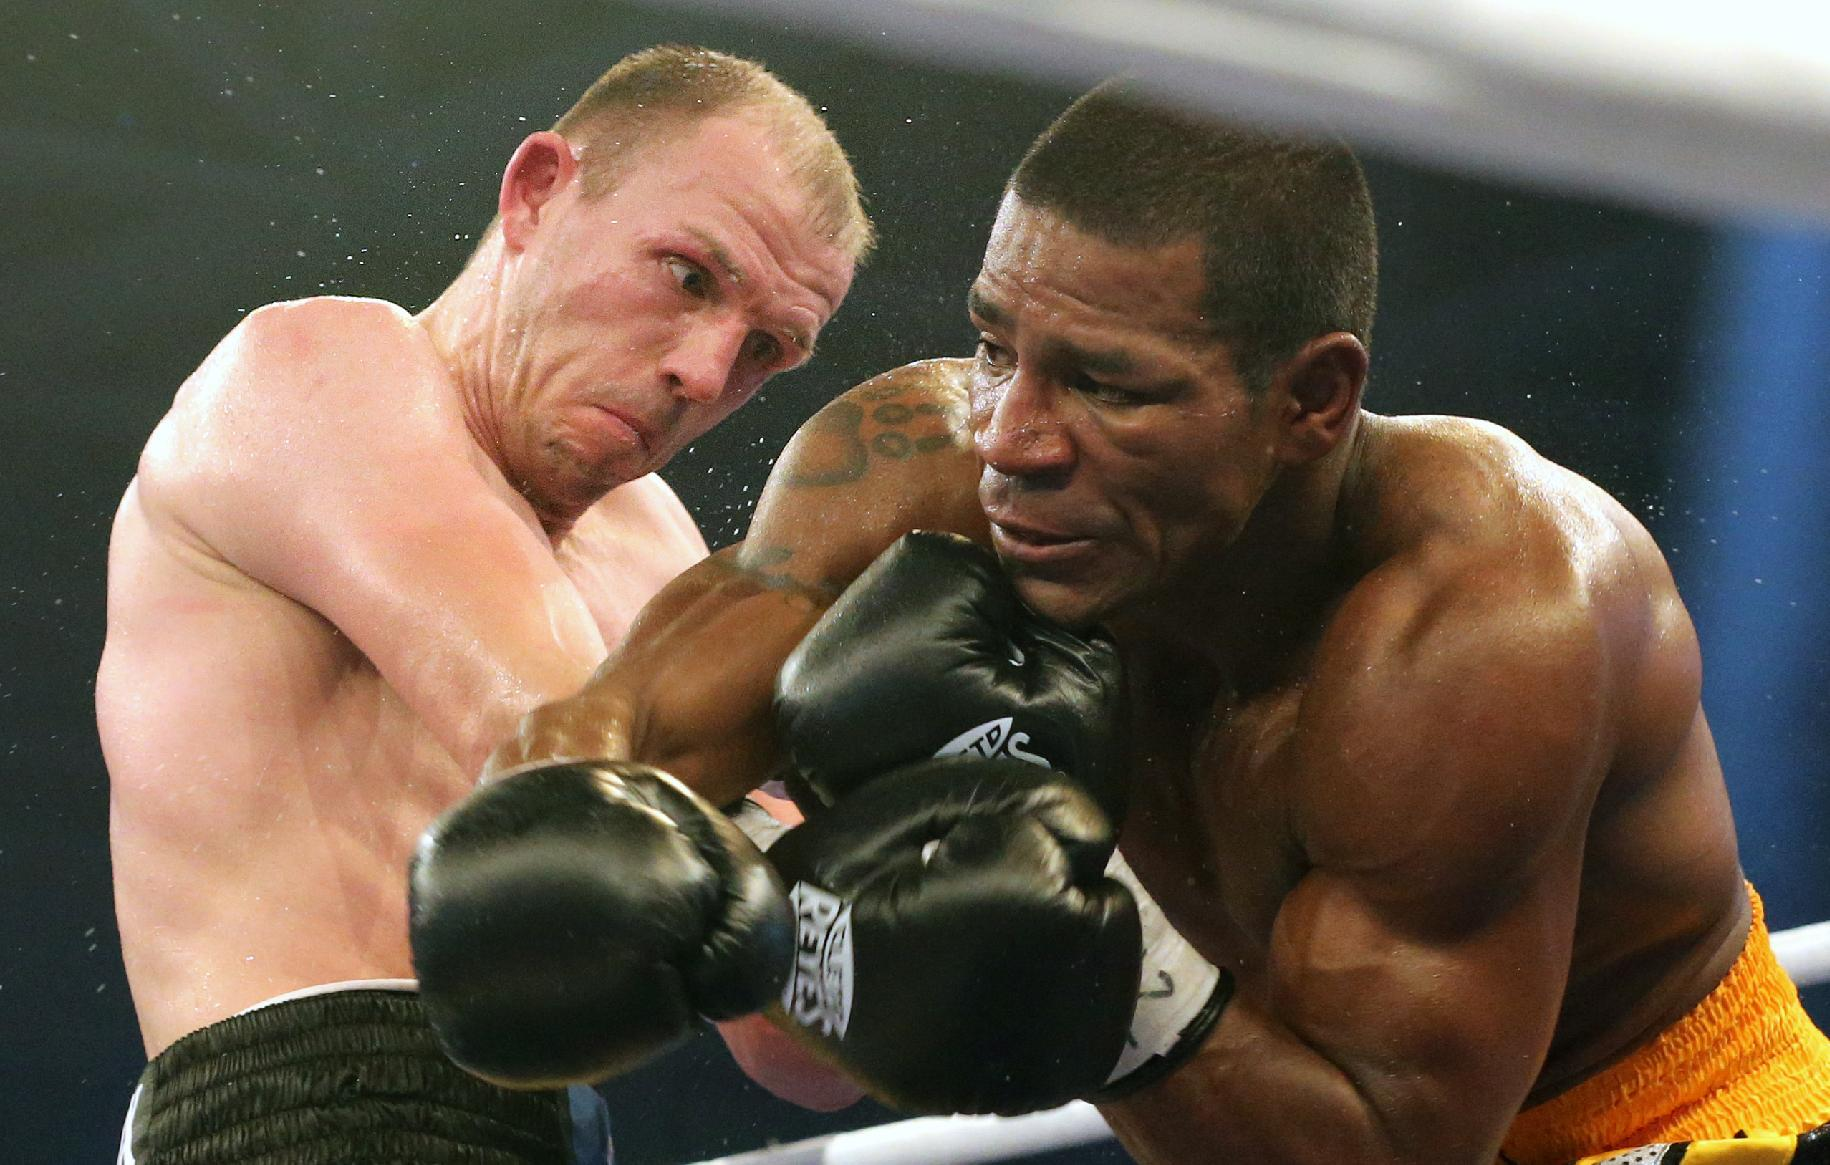 In this picture taken Saturday evening Dec. 14, 2013, German boxer Juergen Braehmer, left,  punches  US Marcus Oliveira  during their title bout in Neubrandenburg, eastern Germany.  Germany's Juergen Braehmer defeated Marcus Oliveira by unanimous decision to take the vacant WBA world light heavyweight title on Saturday night. The judges scored it  in favor of the 35-year-old Braehmer, a former WBO champion, who withstood a late barrage from the previously undefeated American in the last round to claim his second world title. The title had been vacant since Kazakhstan's Beibut Shumenov was declared the WBA's